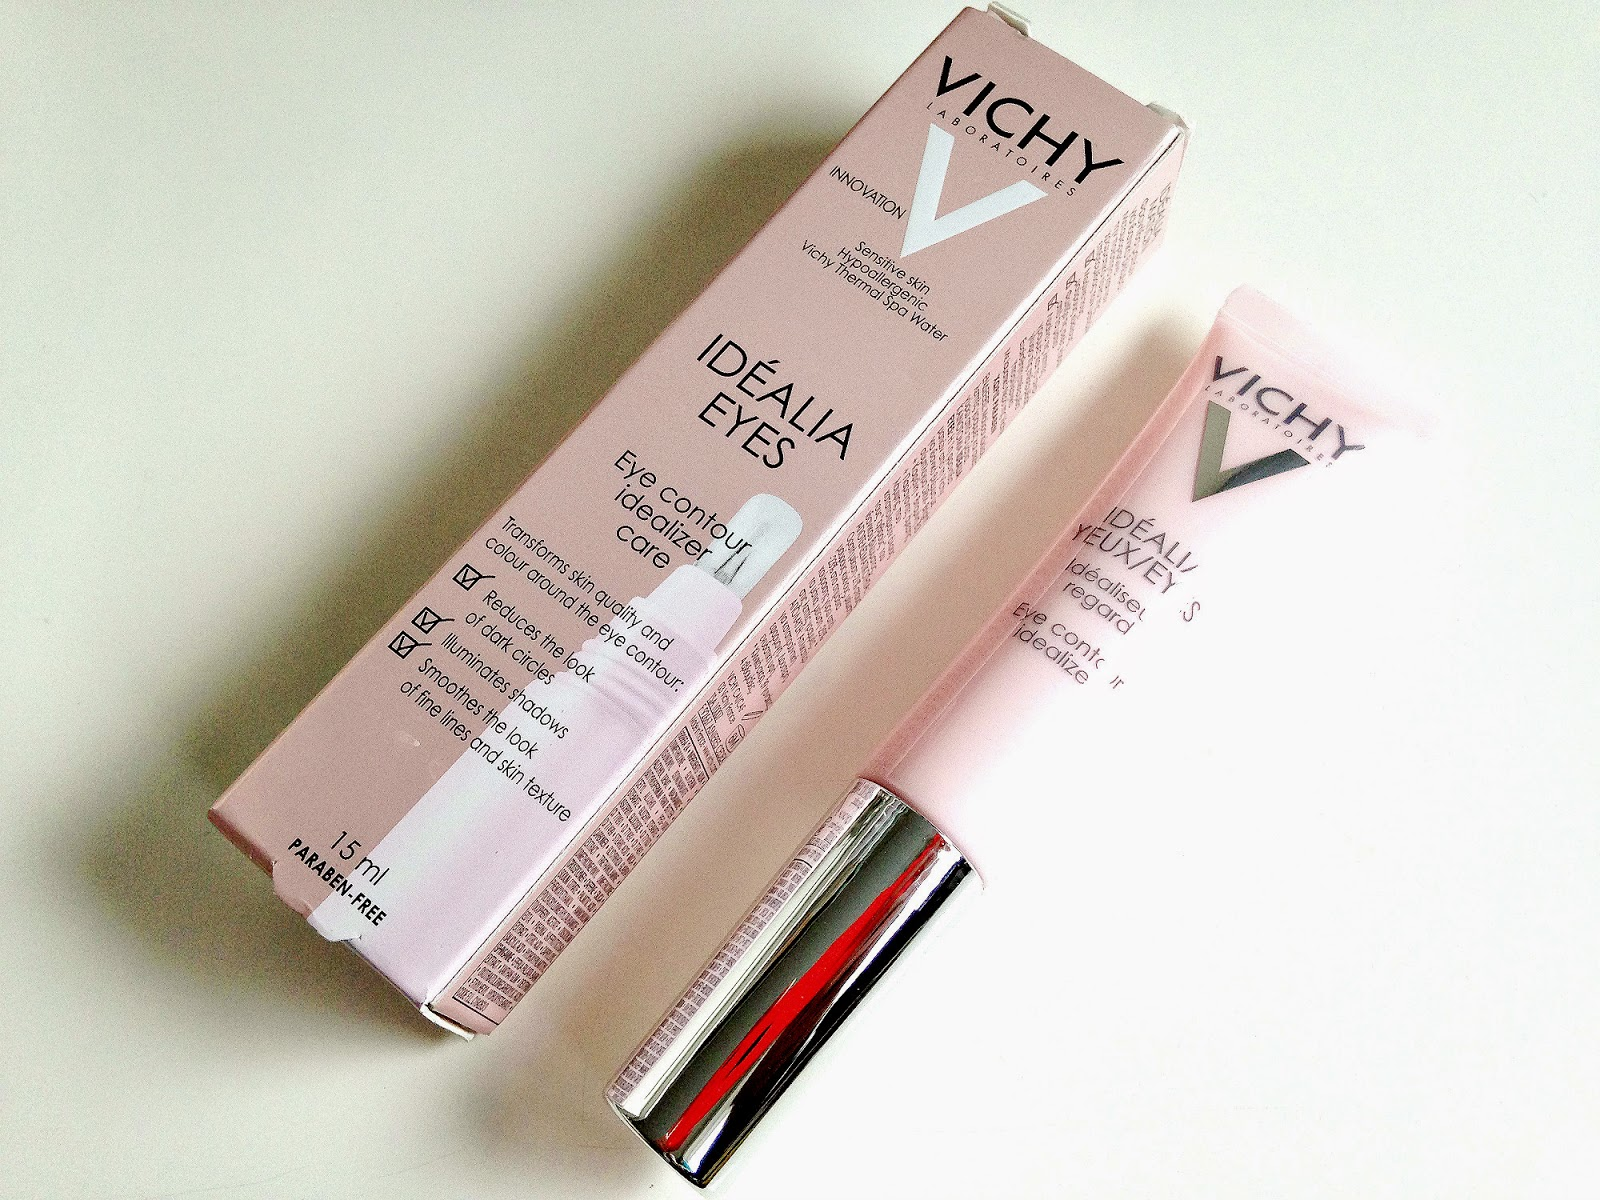 Vichy Idealia Eyes Cream Review